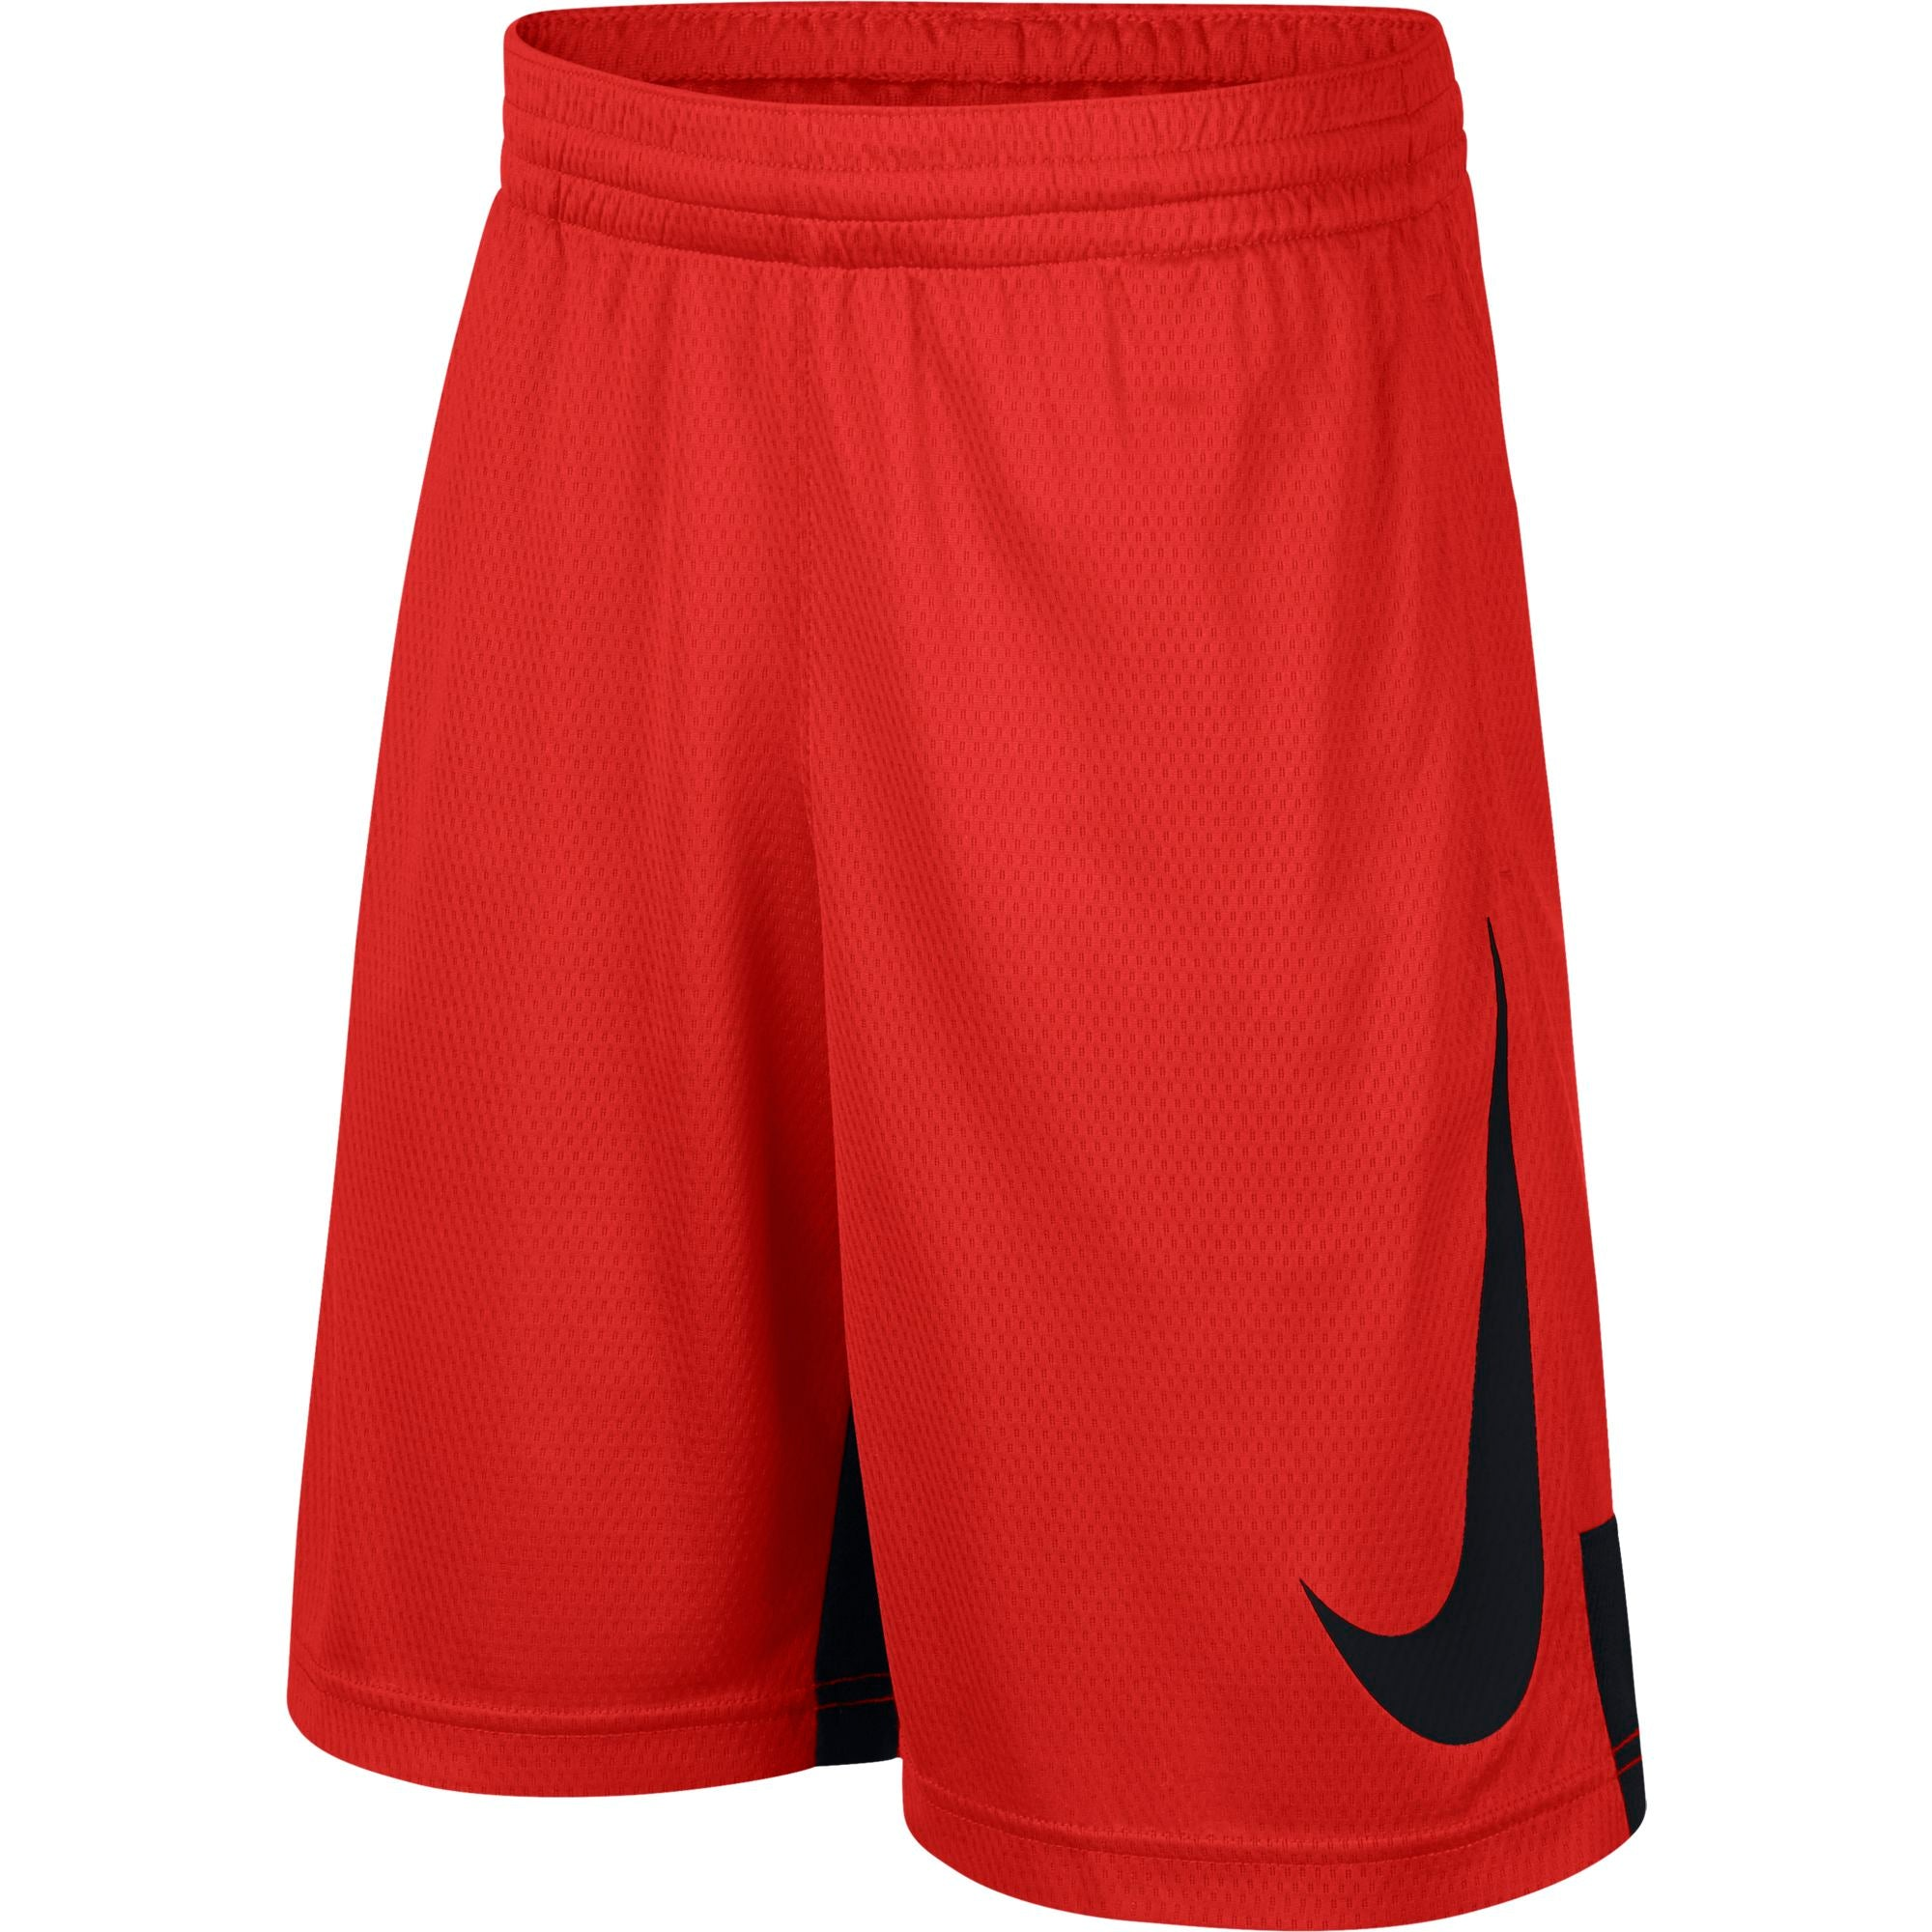 Nike Kids Dry Fit Basketball Shorts - NK-892362-634